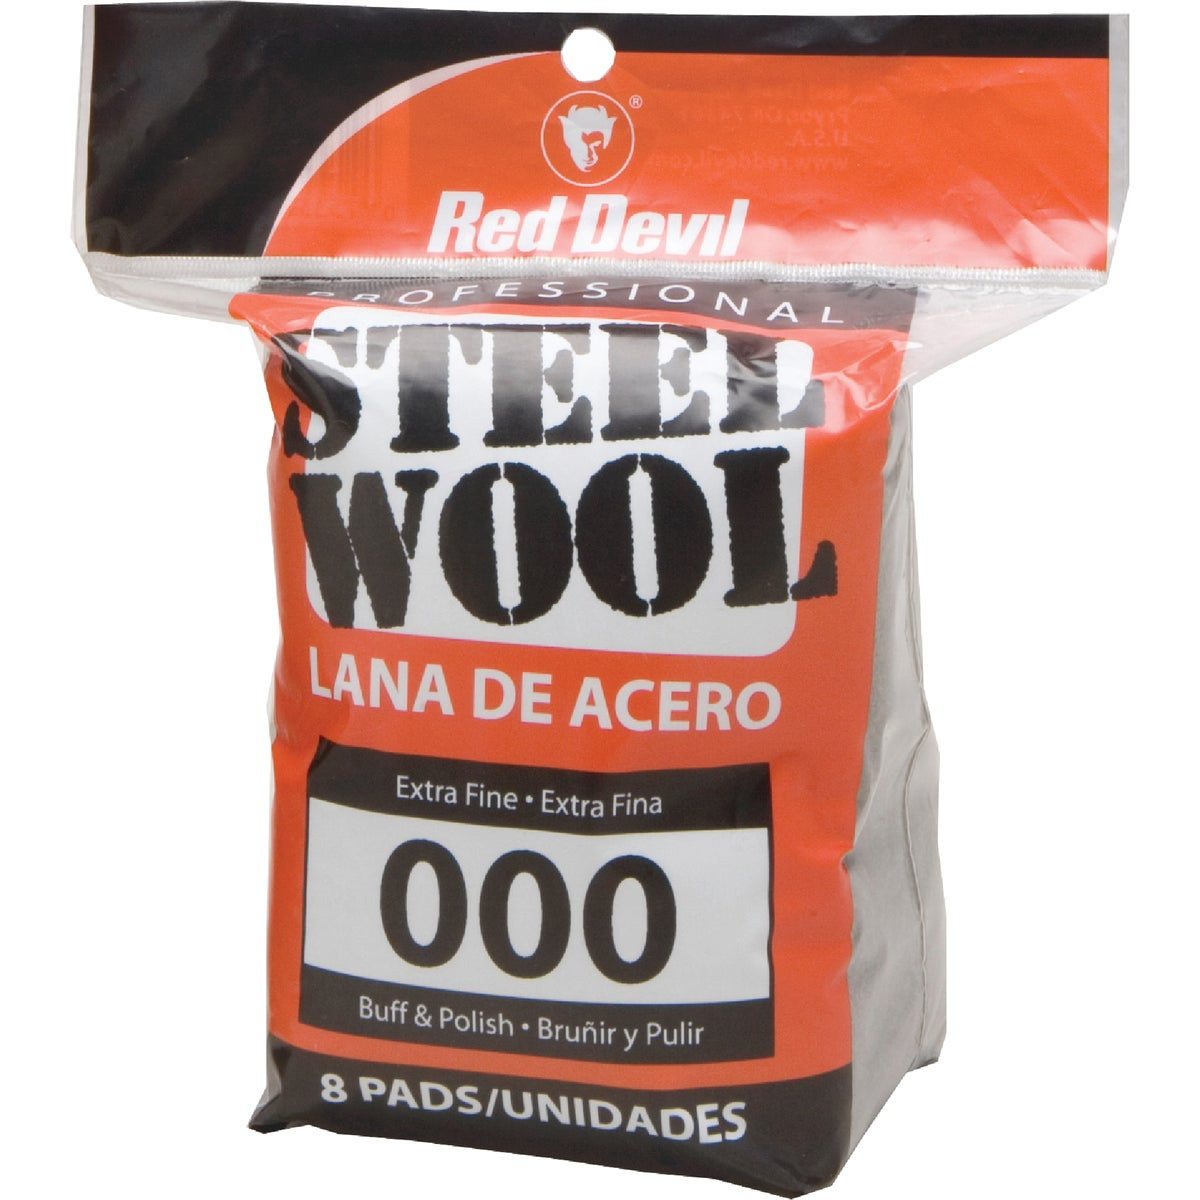 8PK #000 STEEL WOOL - 0321 by Red Devil